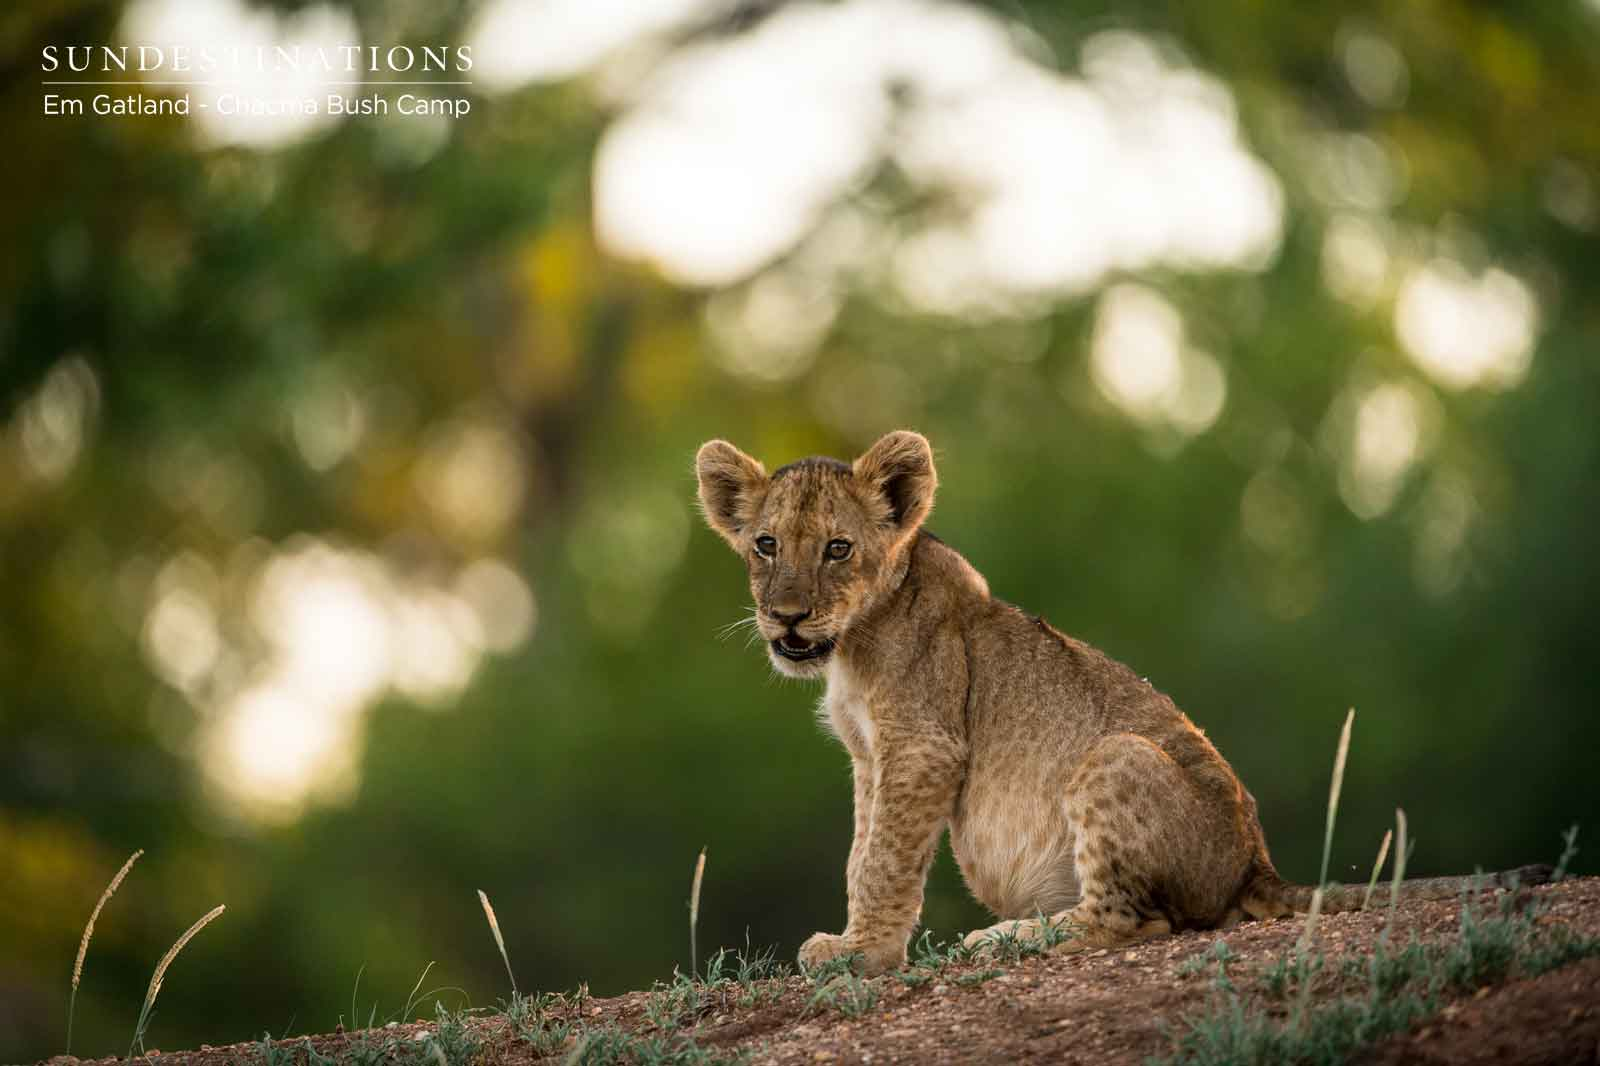 Lone Lion Cub at Chacma Bush Camp